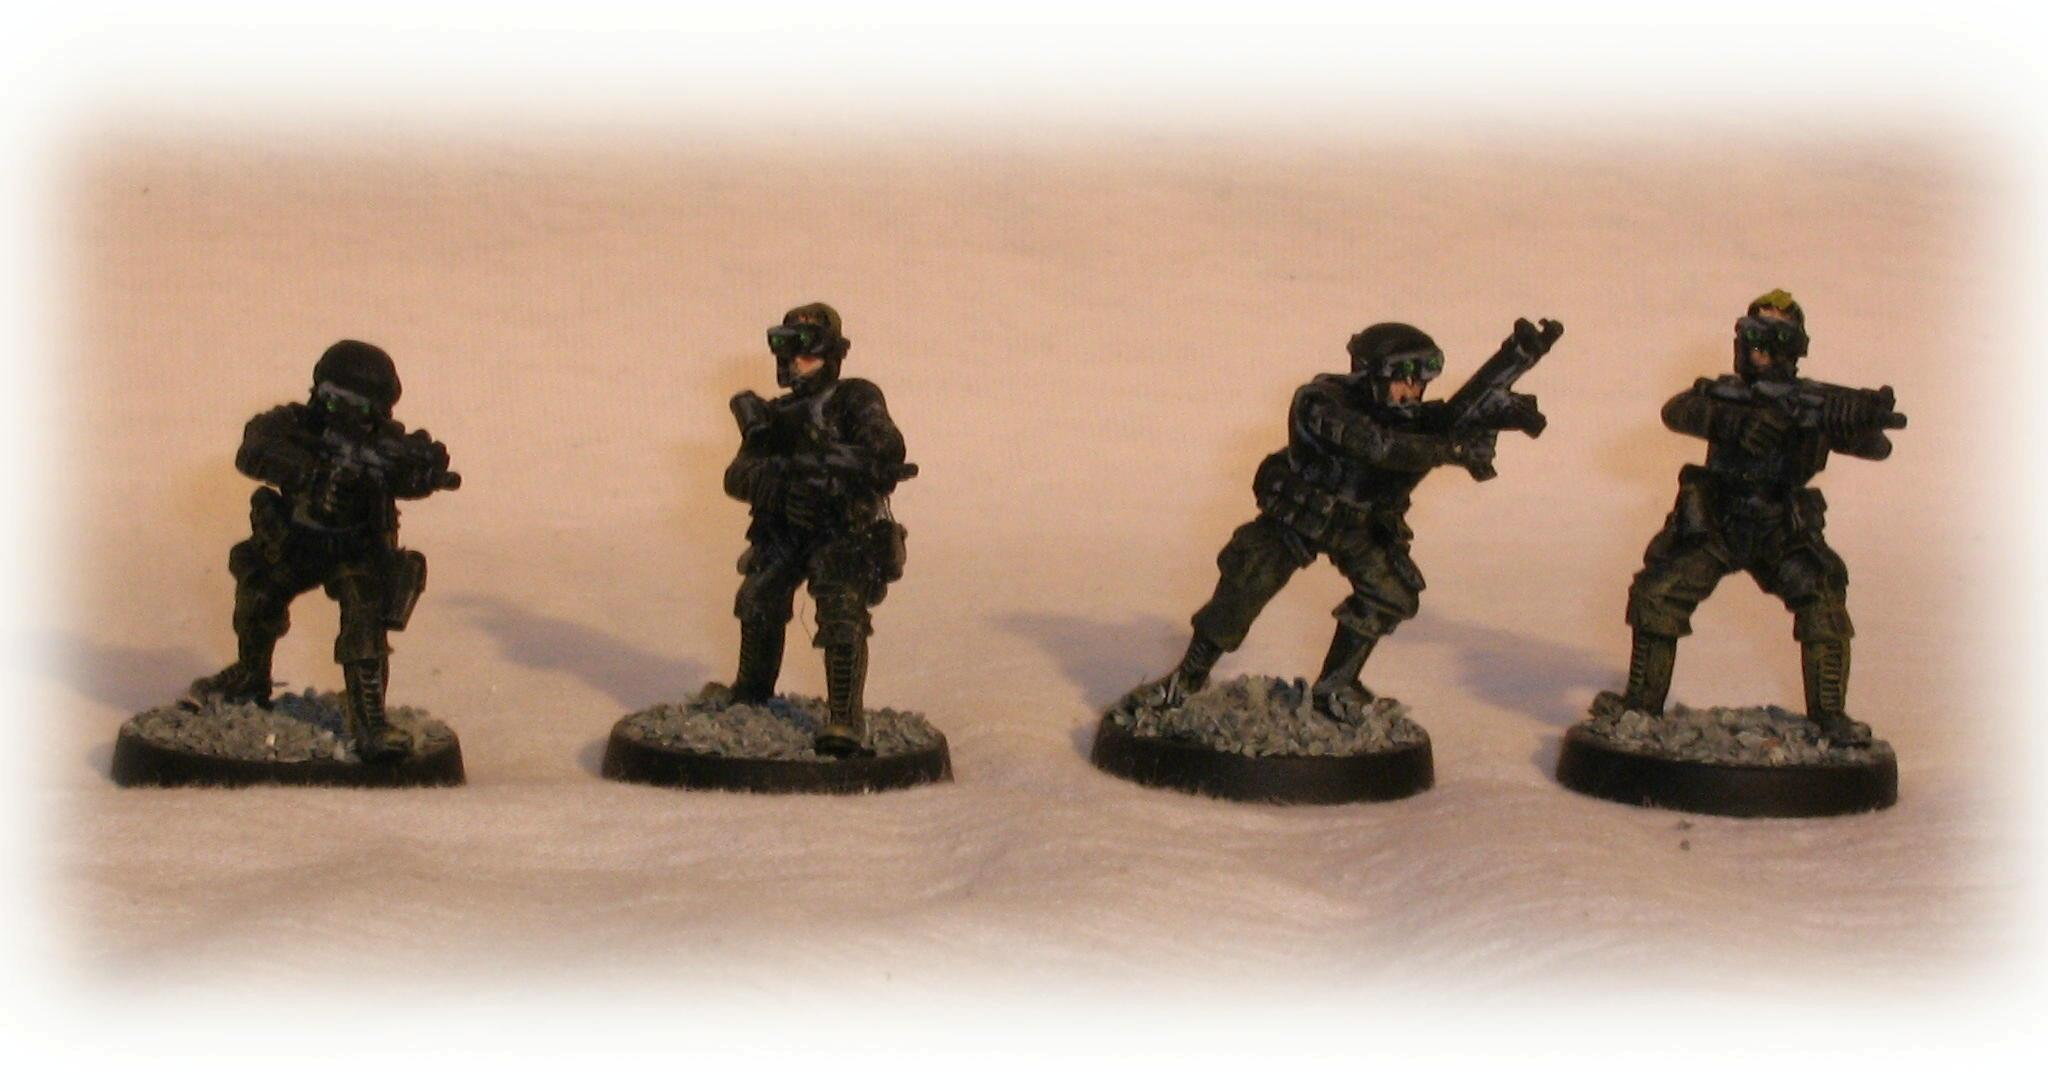 A command squad which will have a small mecha as the officer when finished